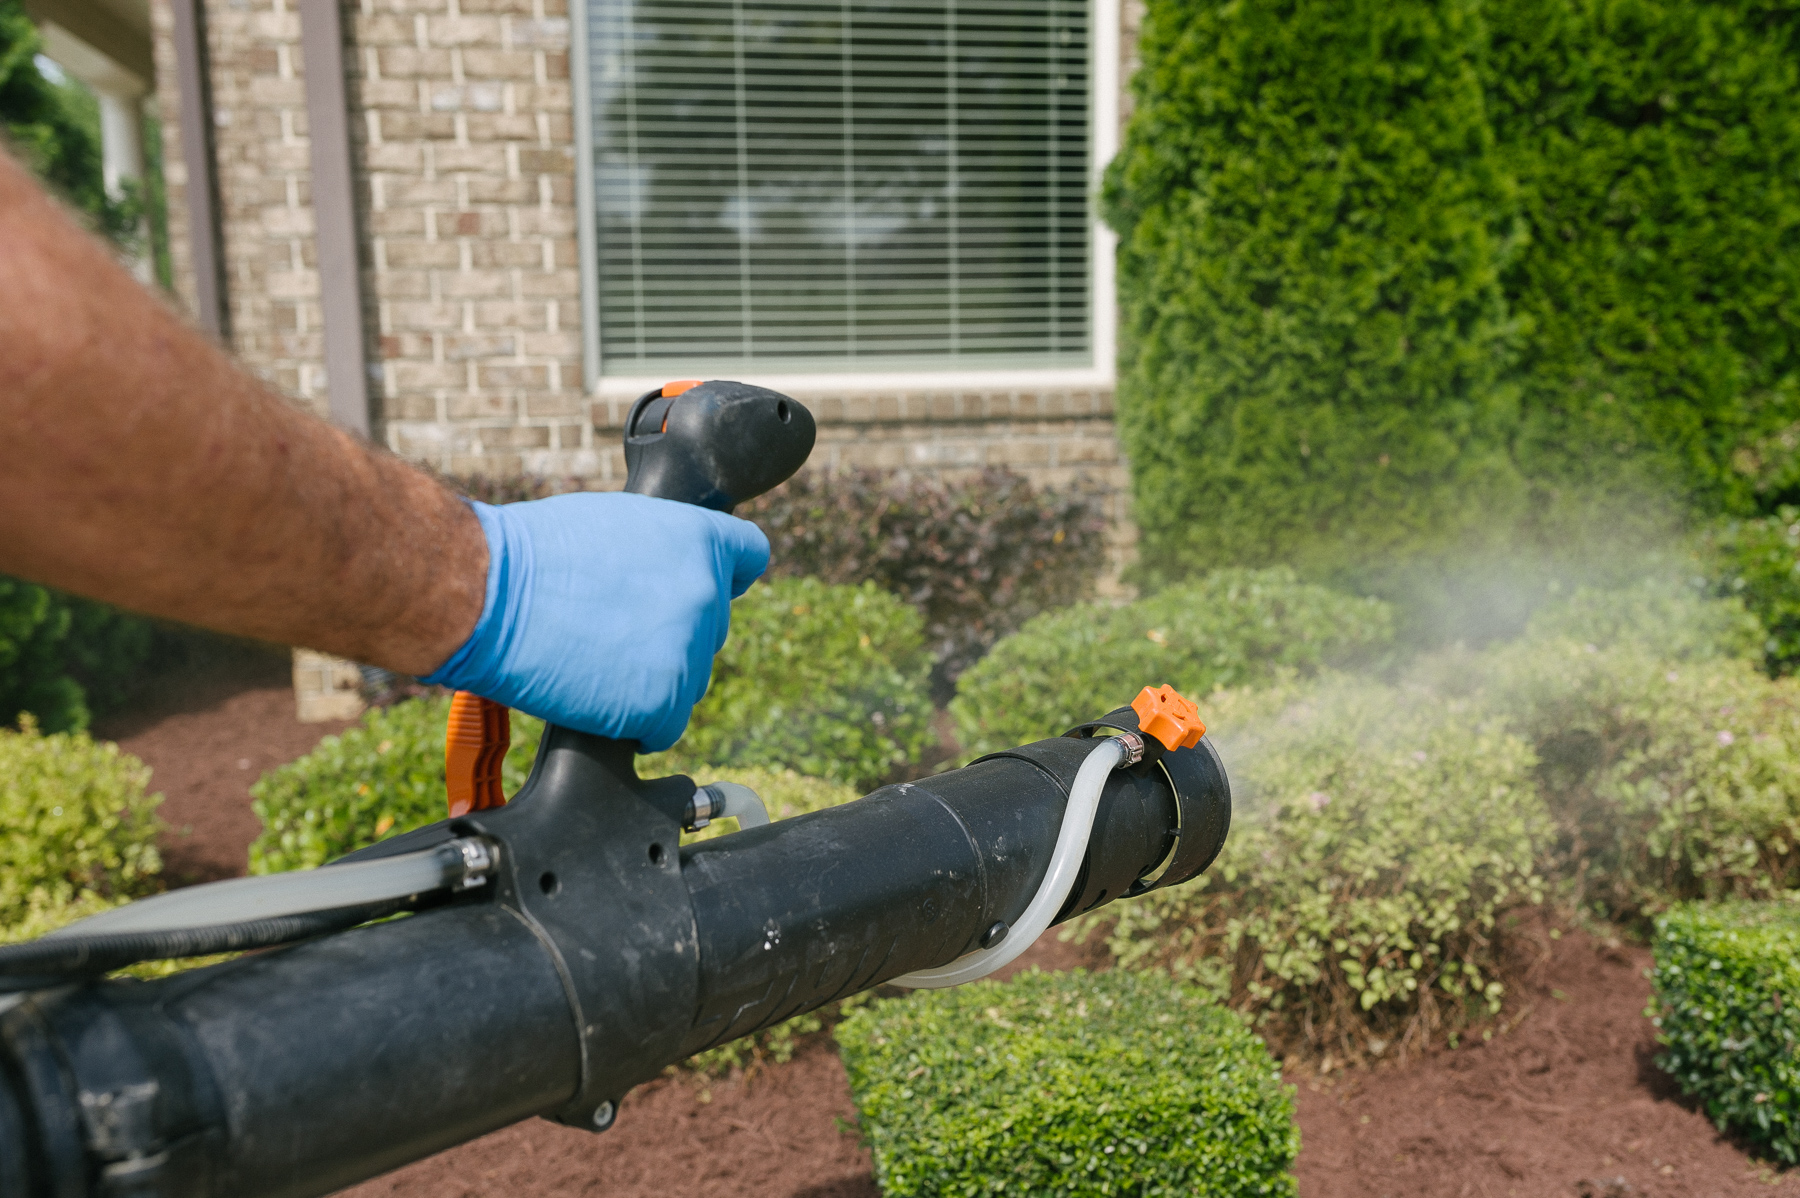 Master Lawn pest control technician spraying for mosquitoes